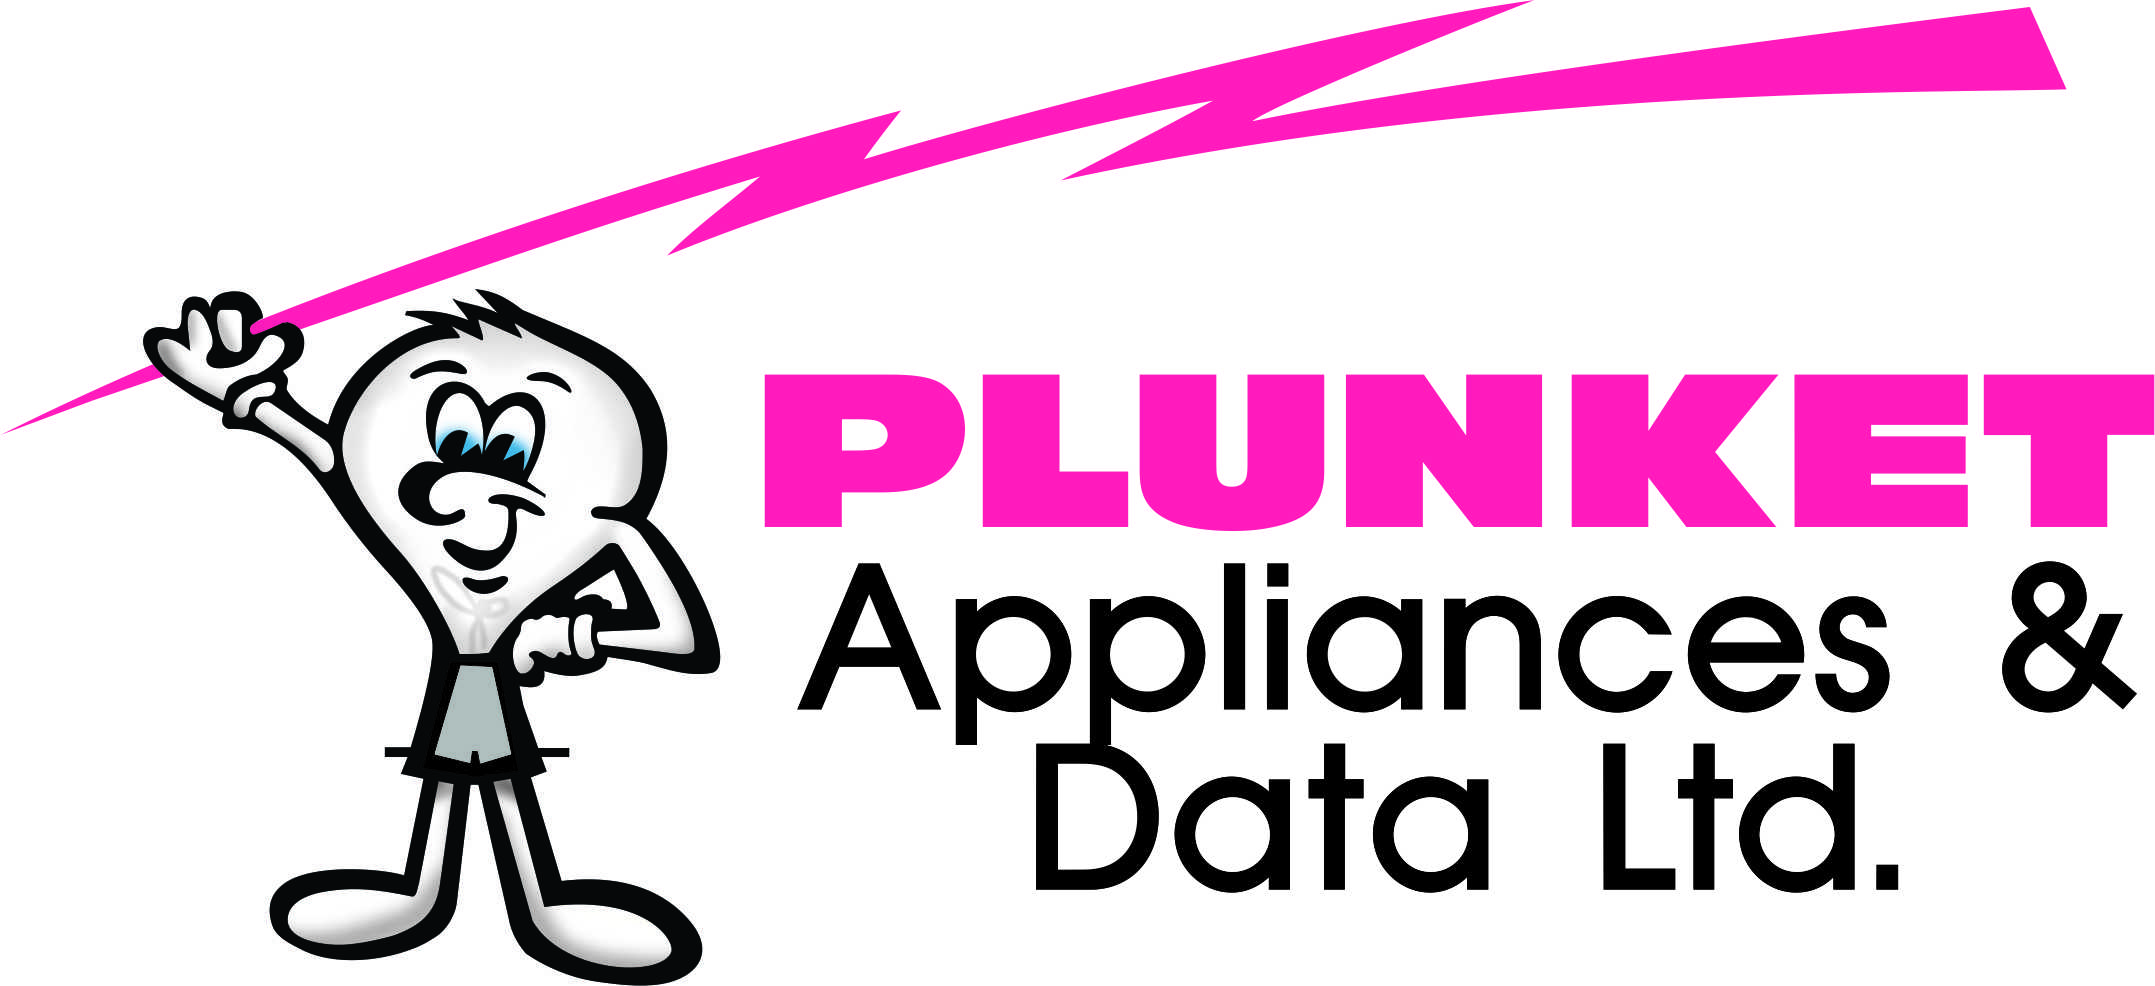 Contact Plunket Electrical for all your electrical needs.